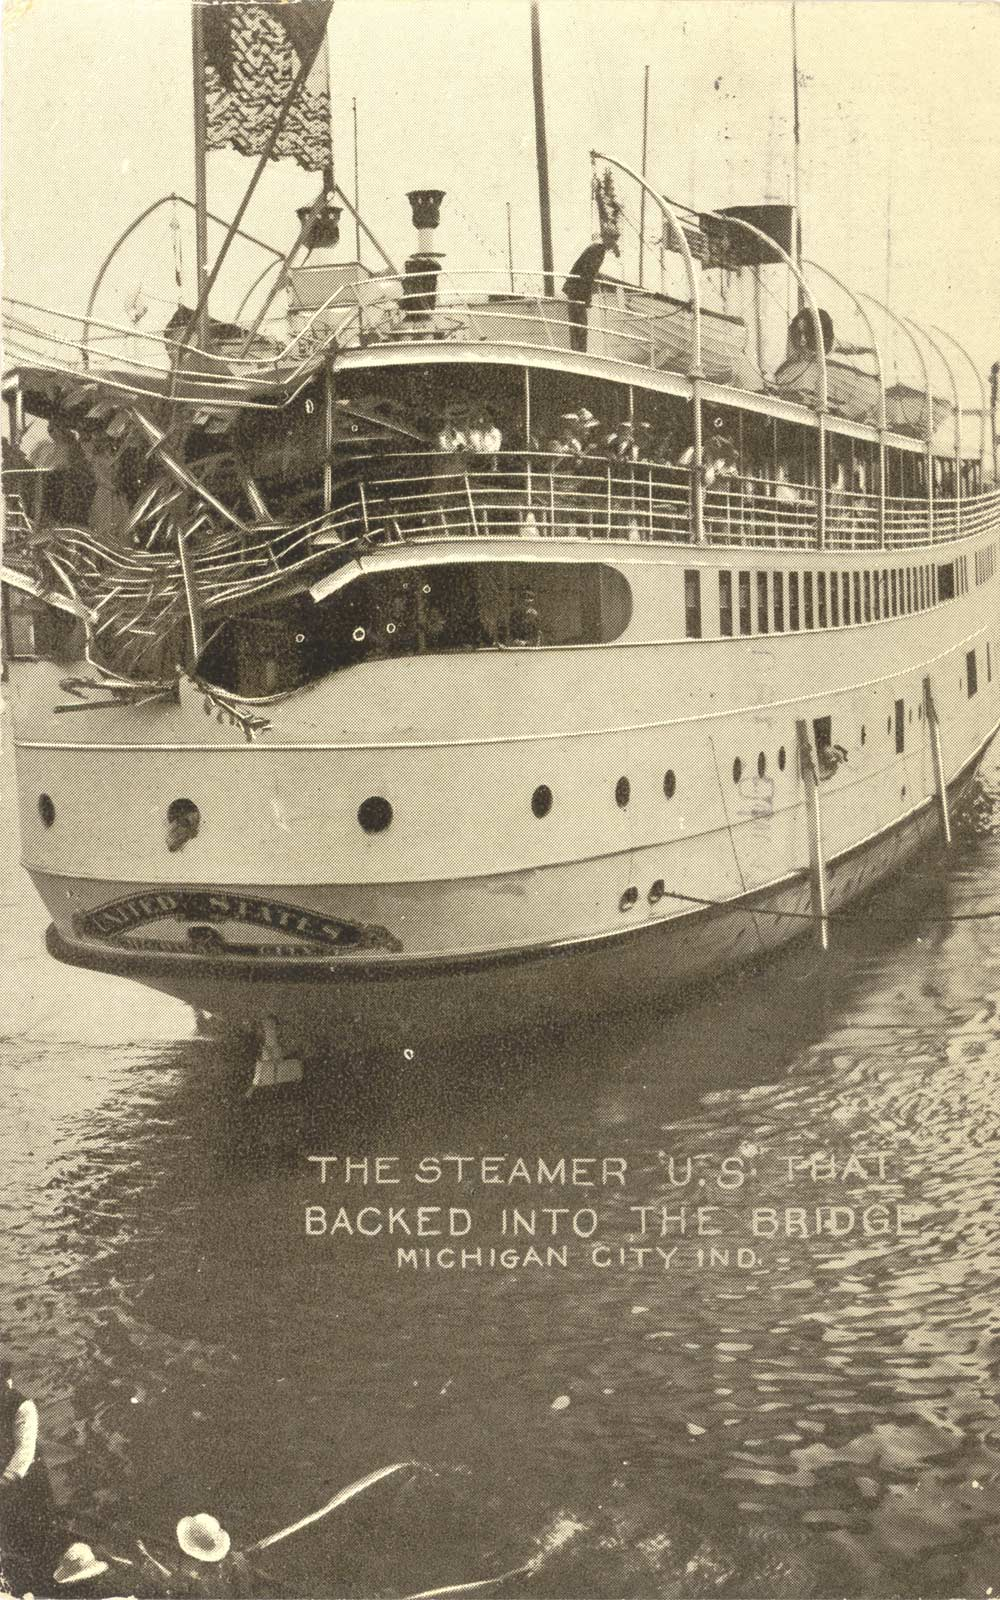 The Steamer U.S. that backed into the bridge, Michigan City, Ind.